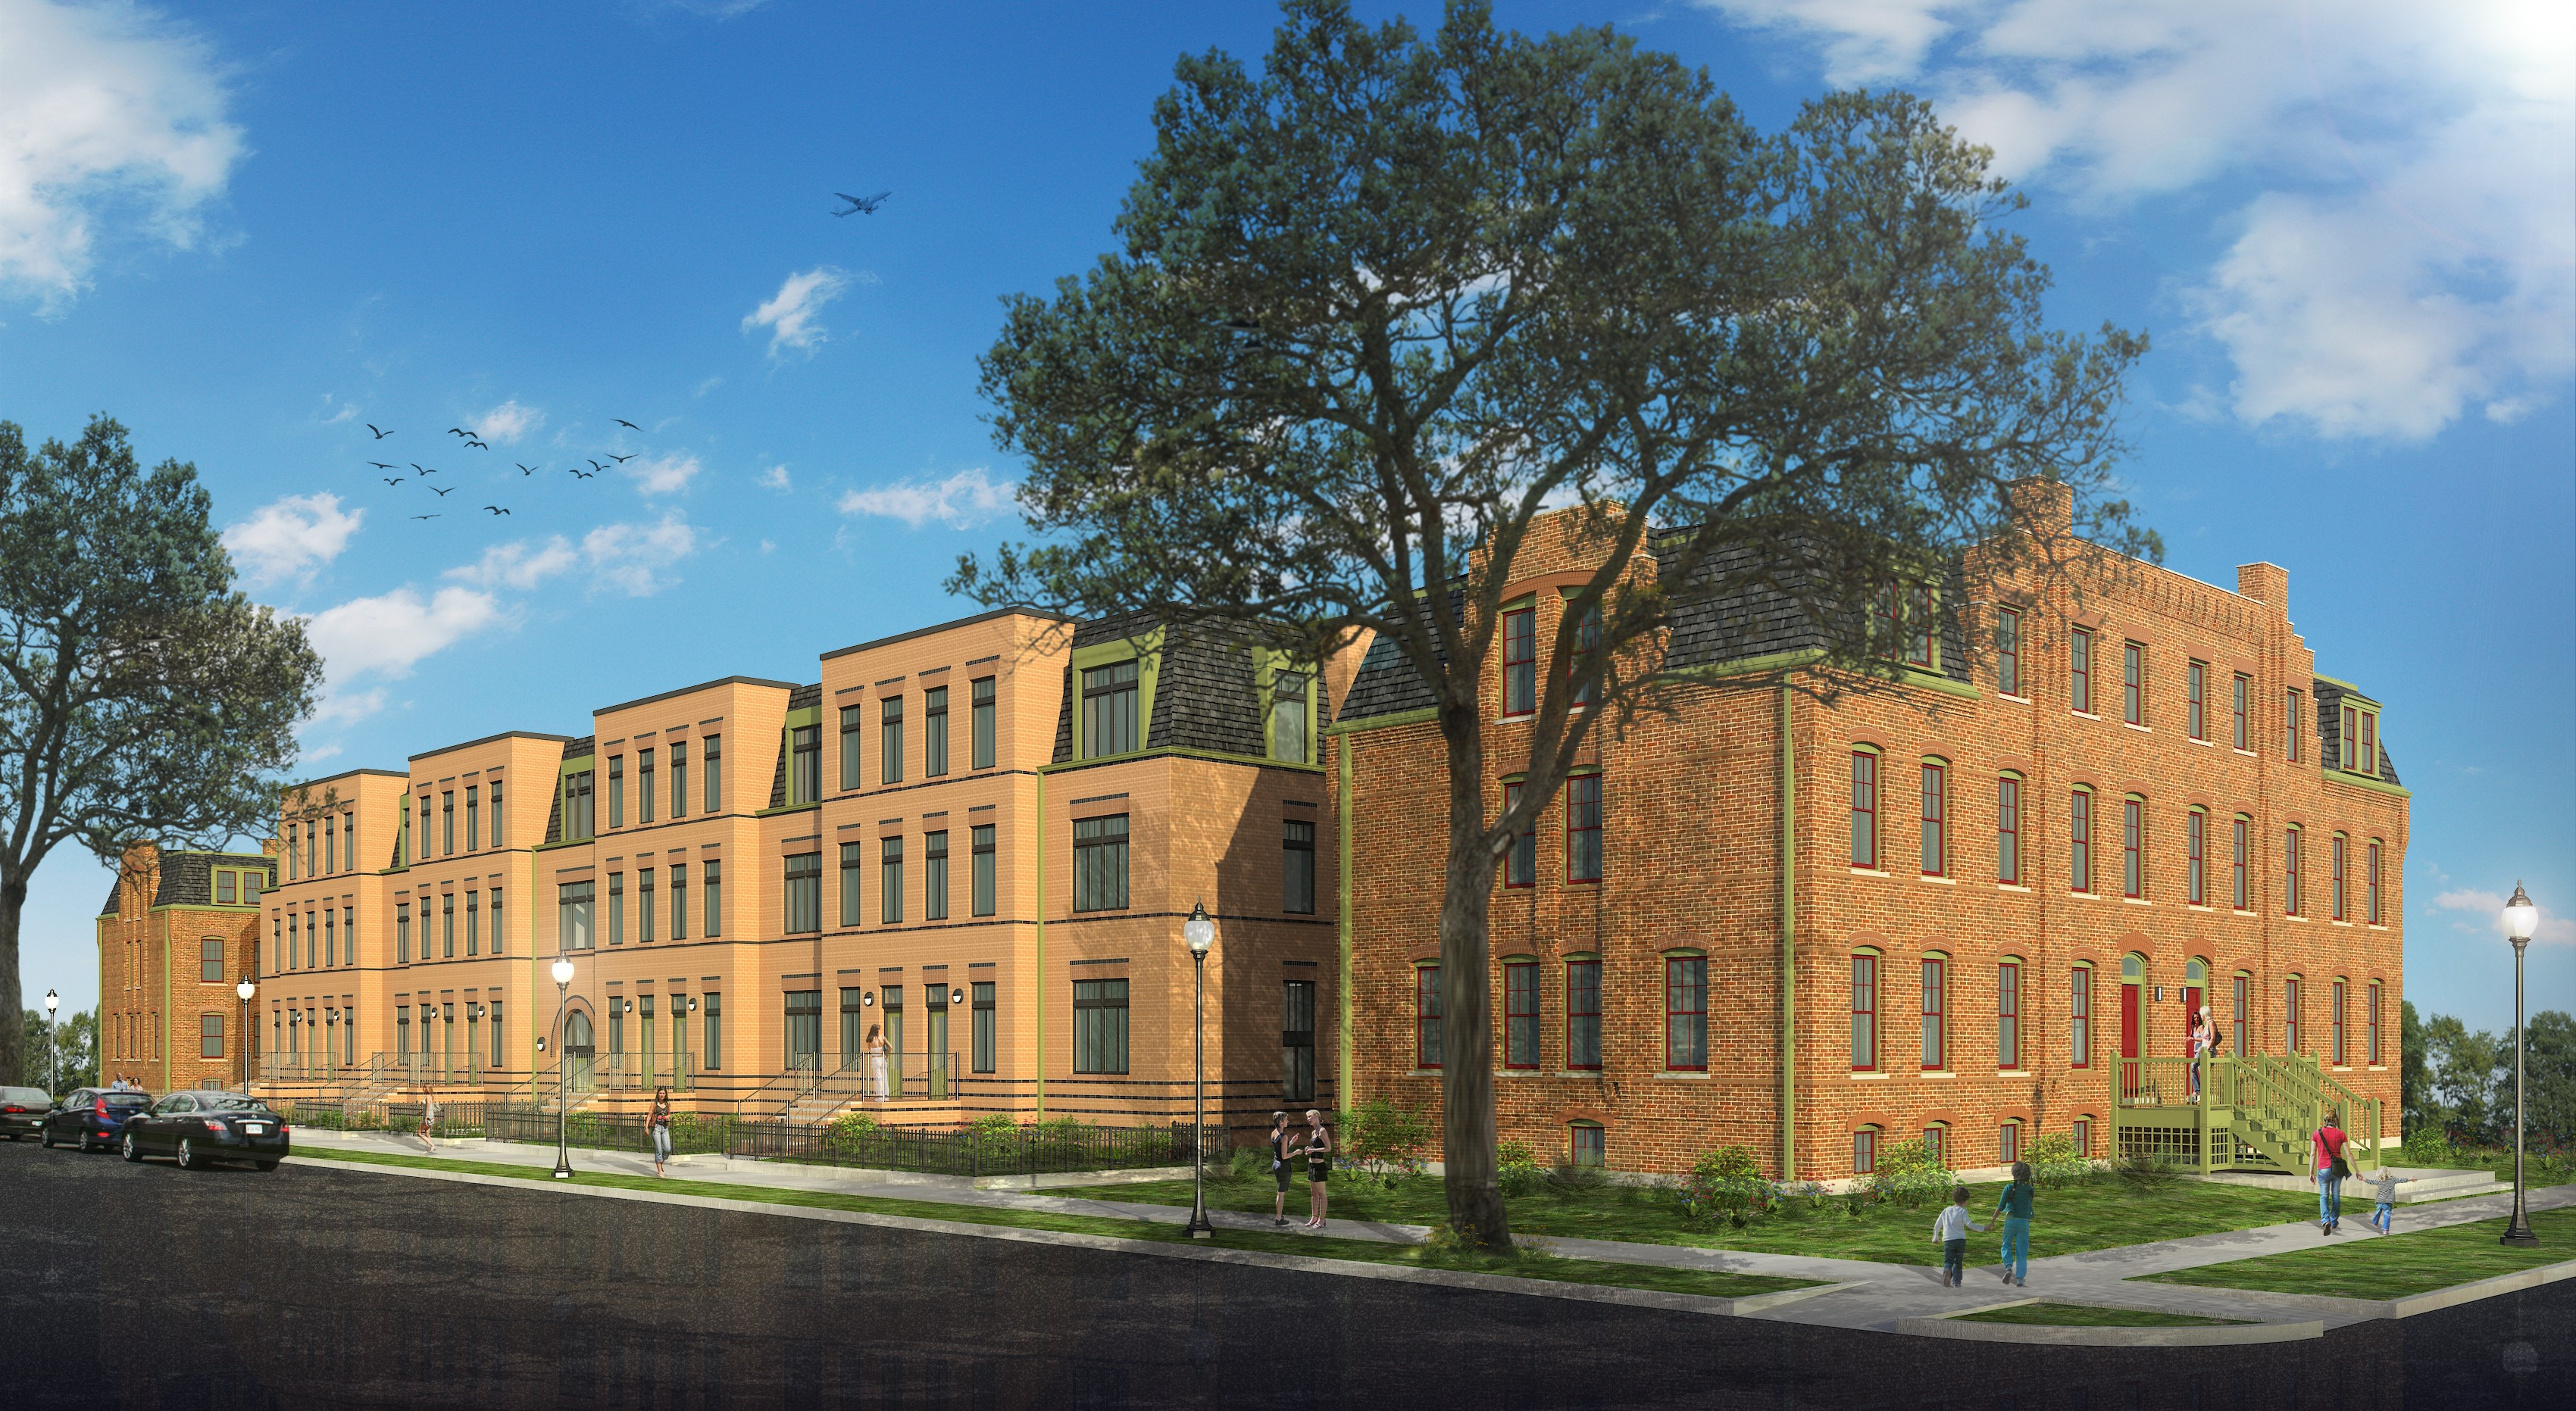 Pullman to get first new residential building in nearly 50